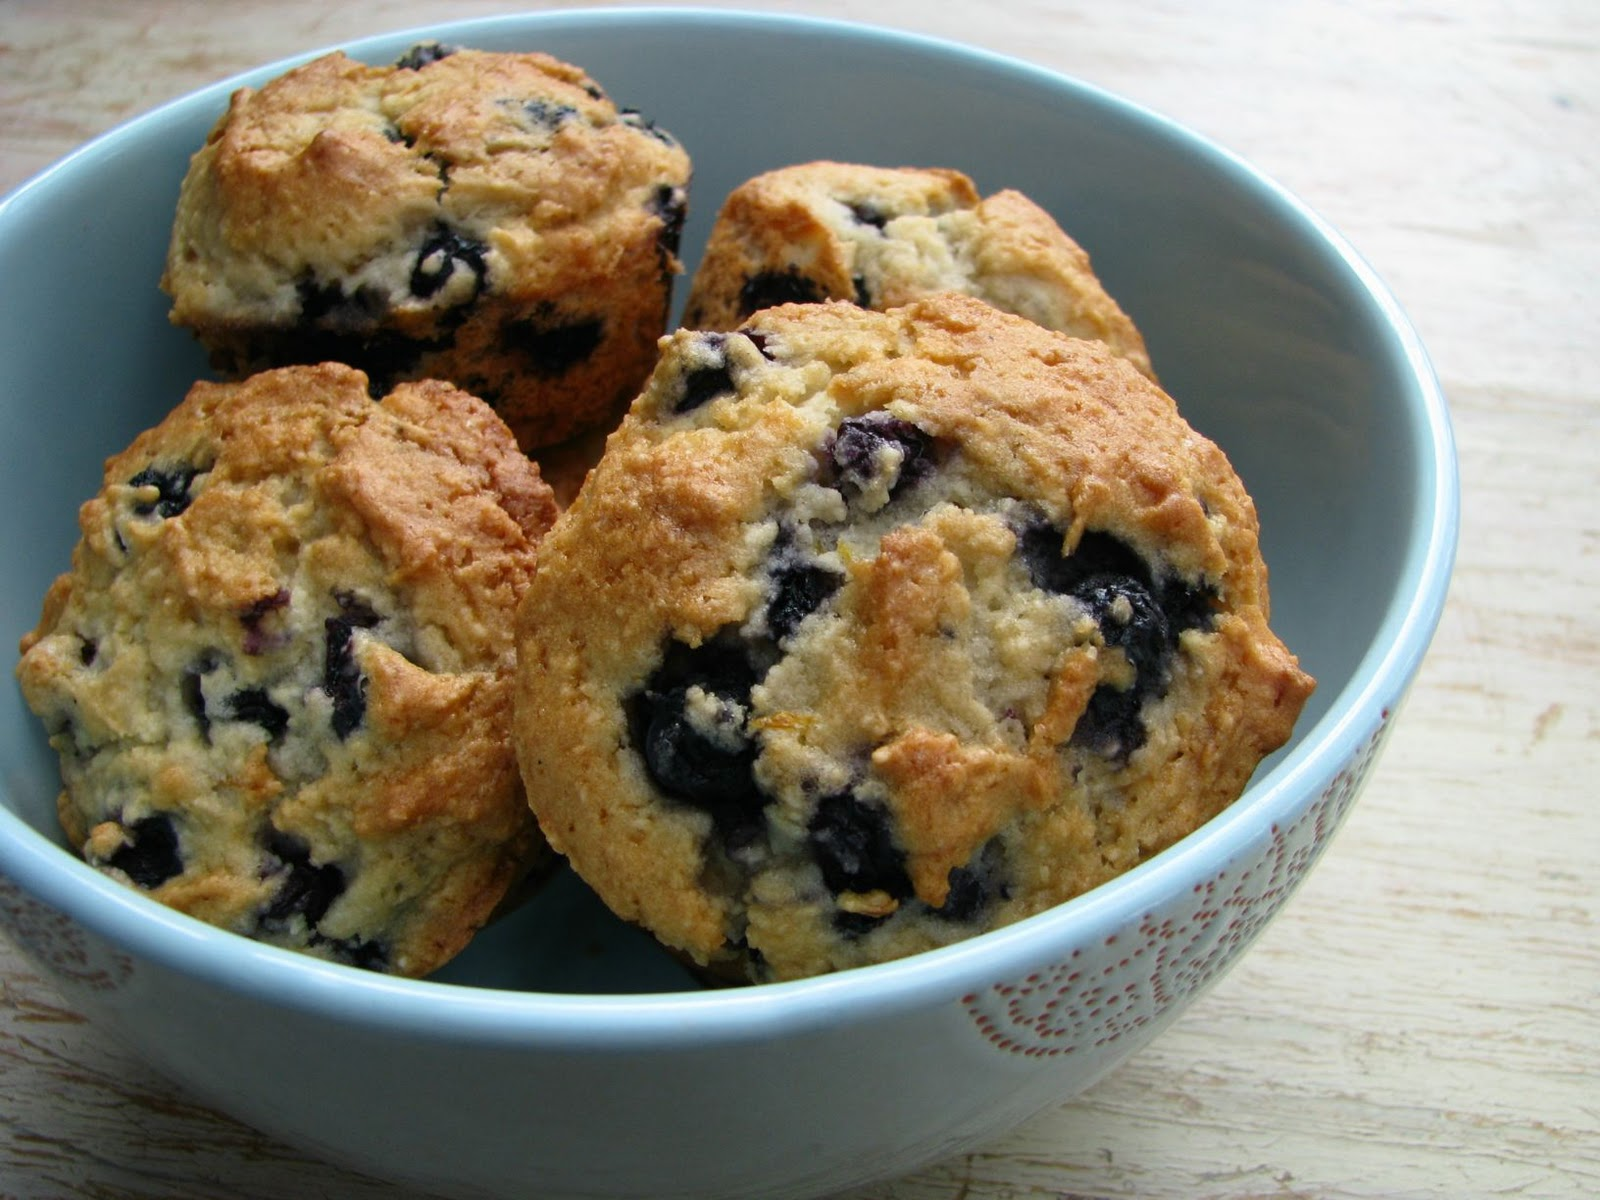 gluten and dairy-free blueberry & almond muffin recipe ...